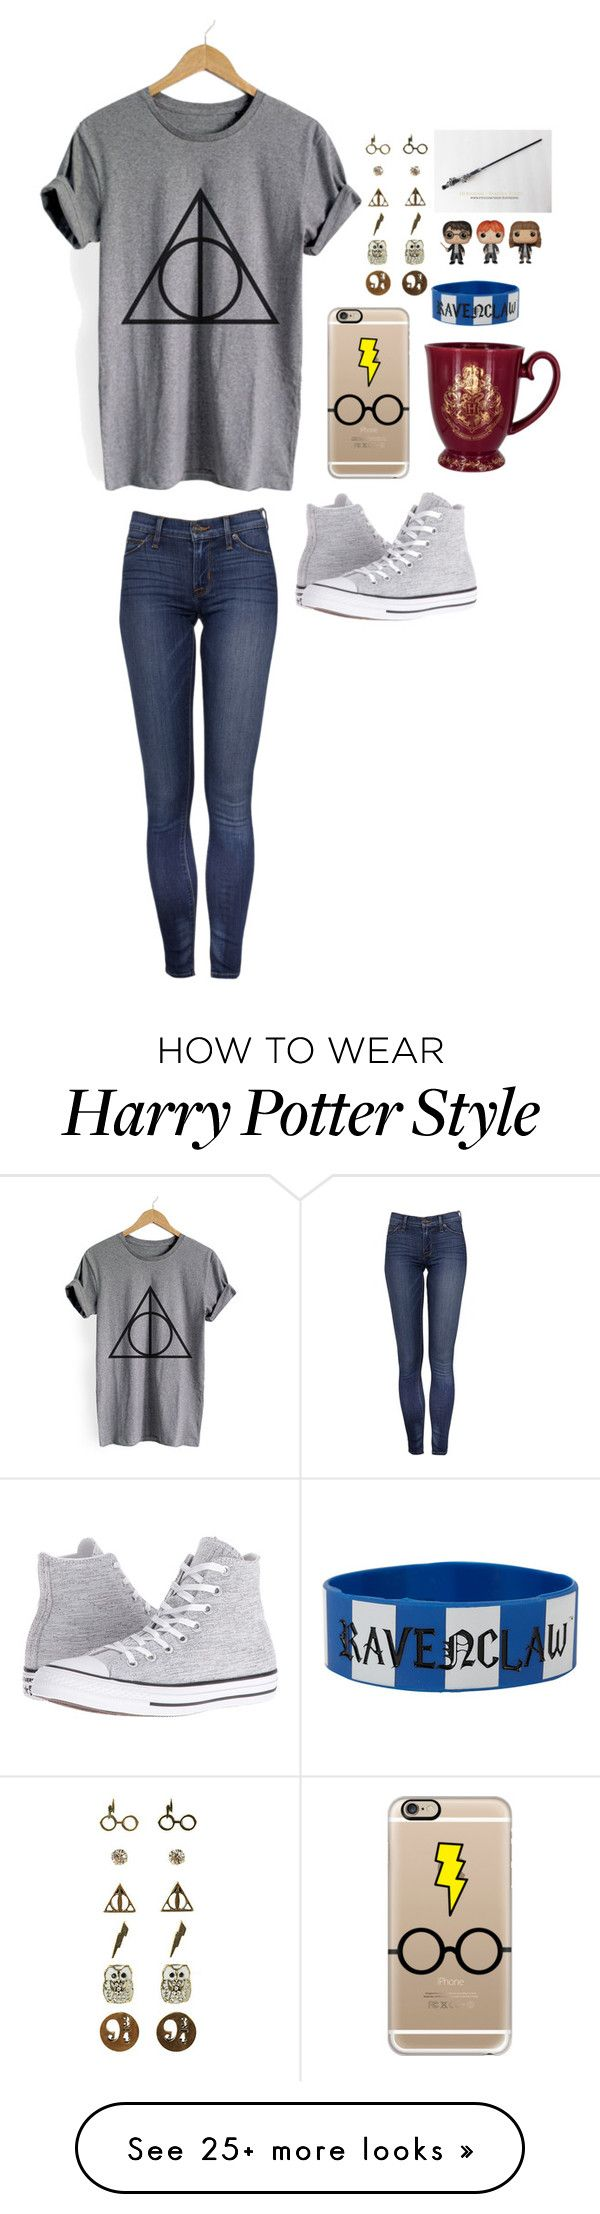 """I'm a Harry Potter mood"" by clairebear89 on Polyvore featuring Casetify, Warner Bros., Funko and Converse"